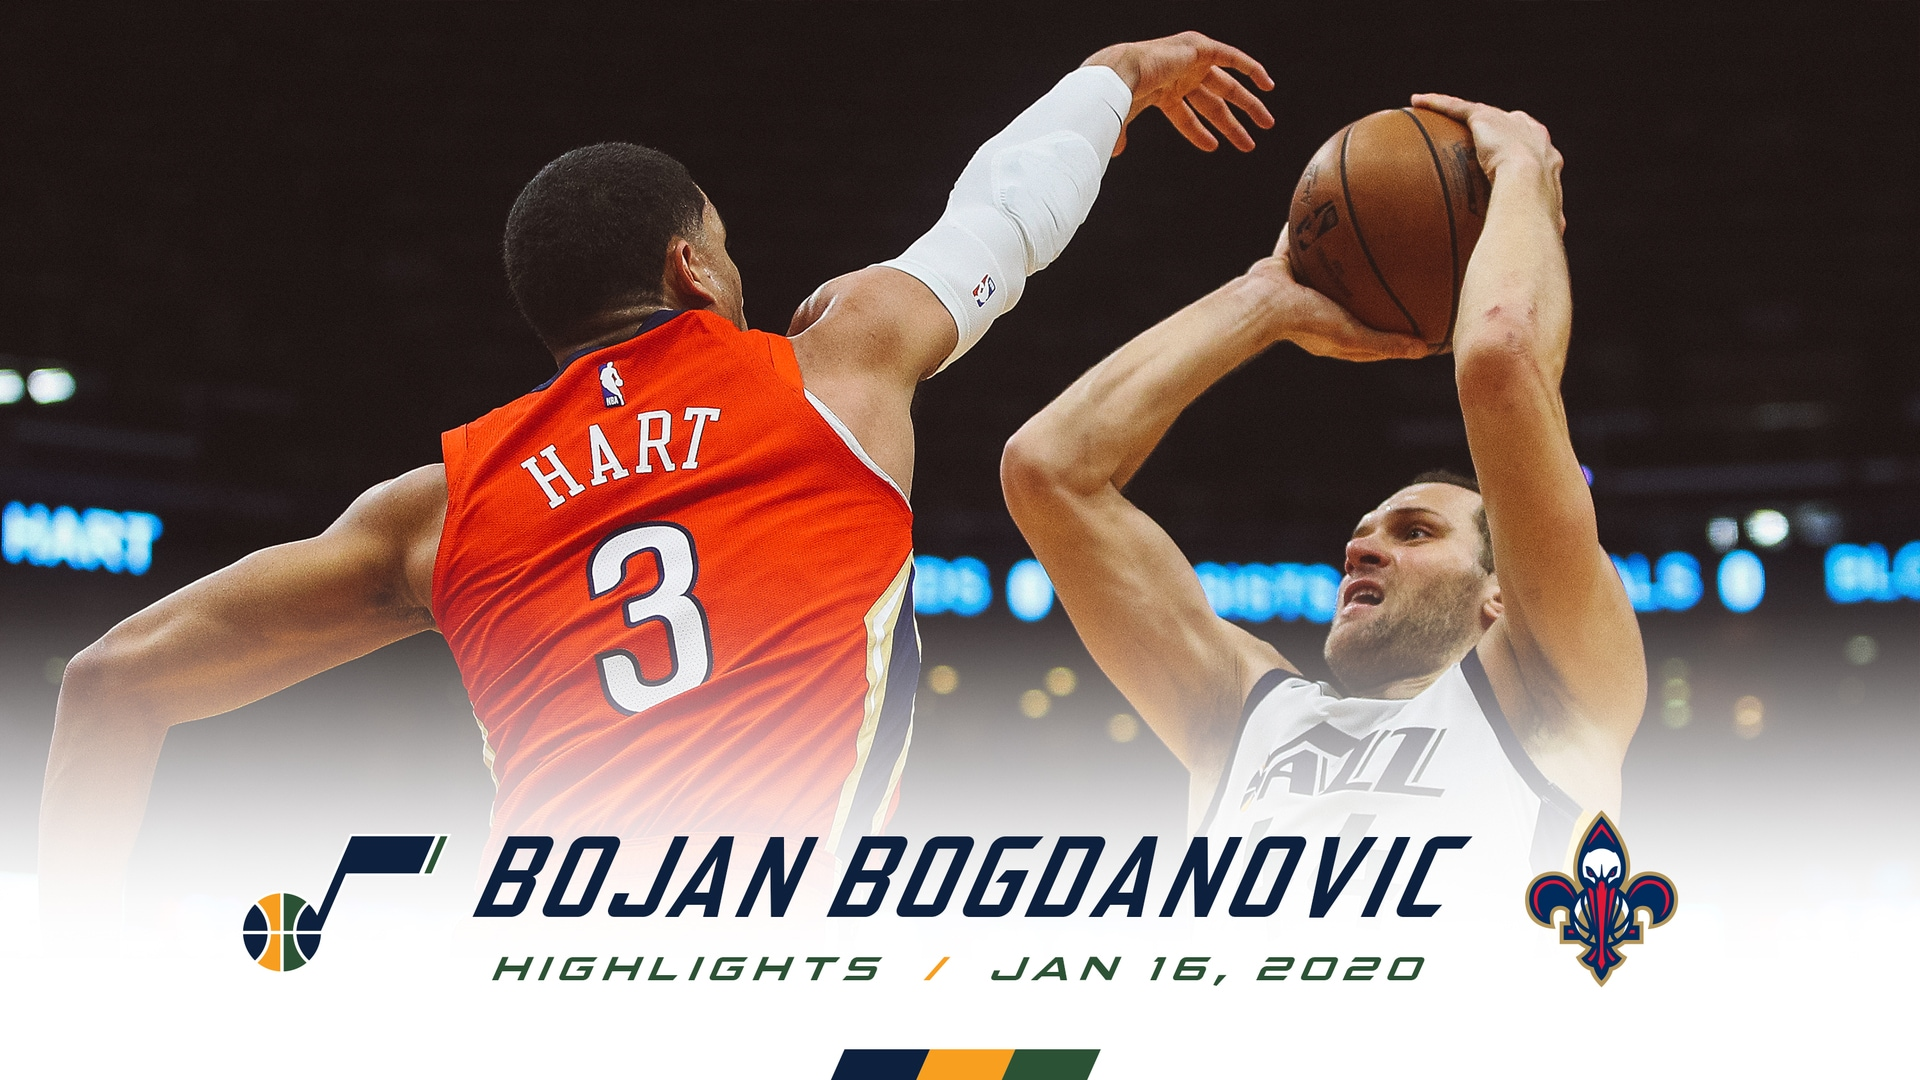 Highlights: Bojan Bogdanović—26 points, 4 assists